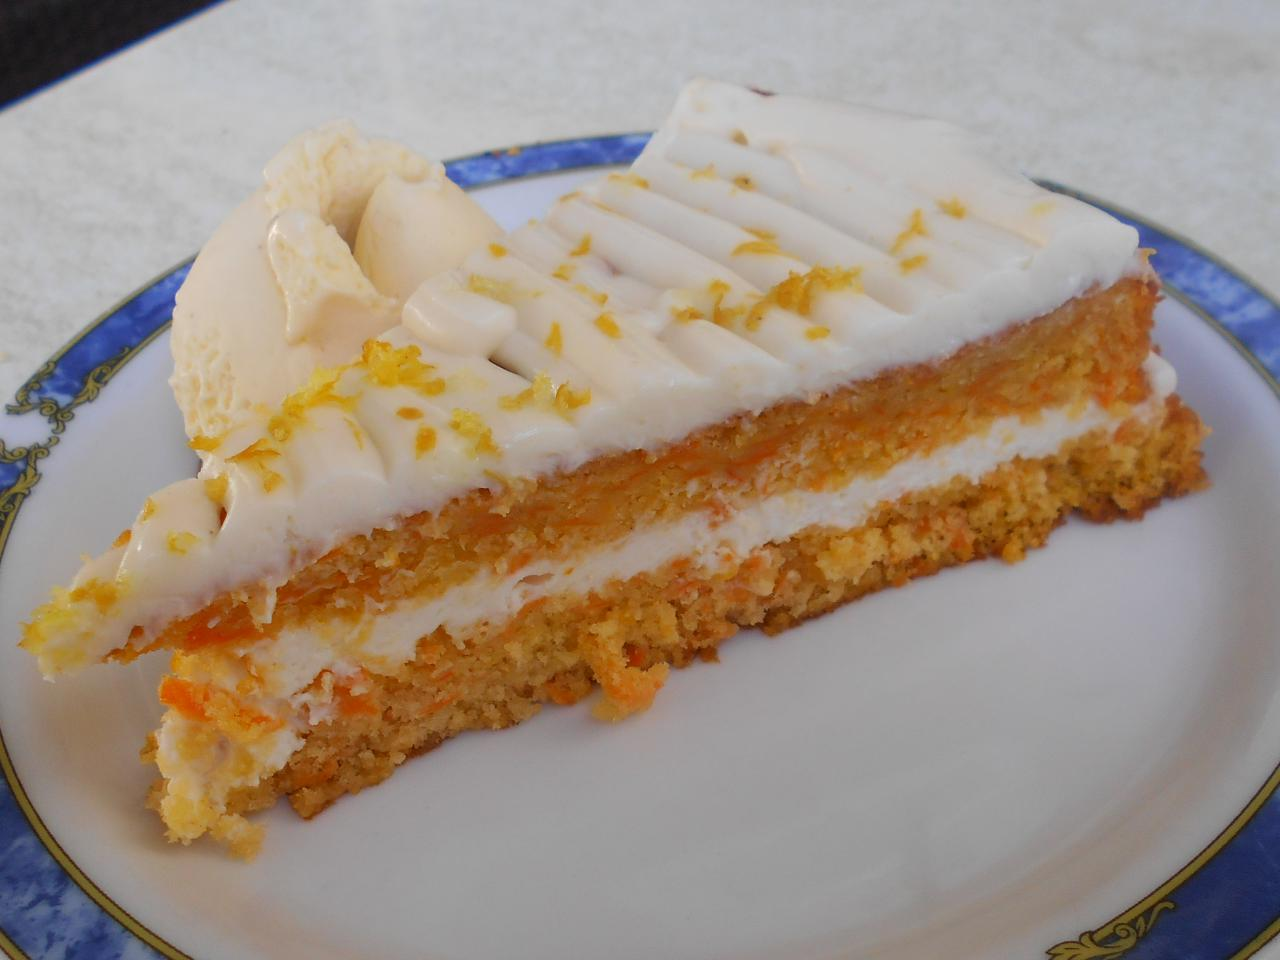 The carrot cake had the right texture and taste